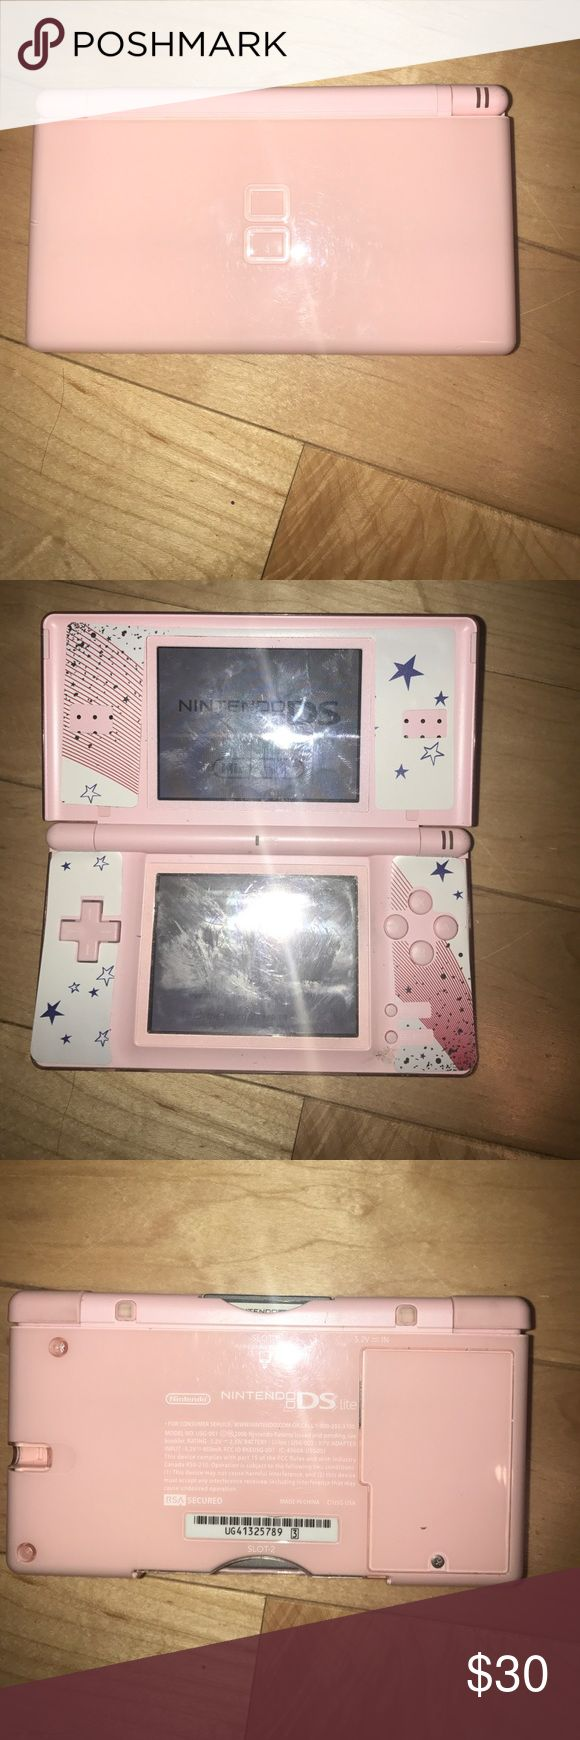 Nintendo DS Lite Doesn't come with stylist comes with cooking mama 2 game and charger Nintendo Other